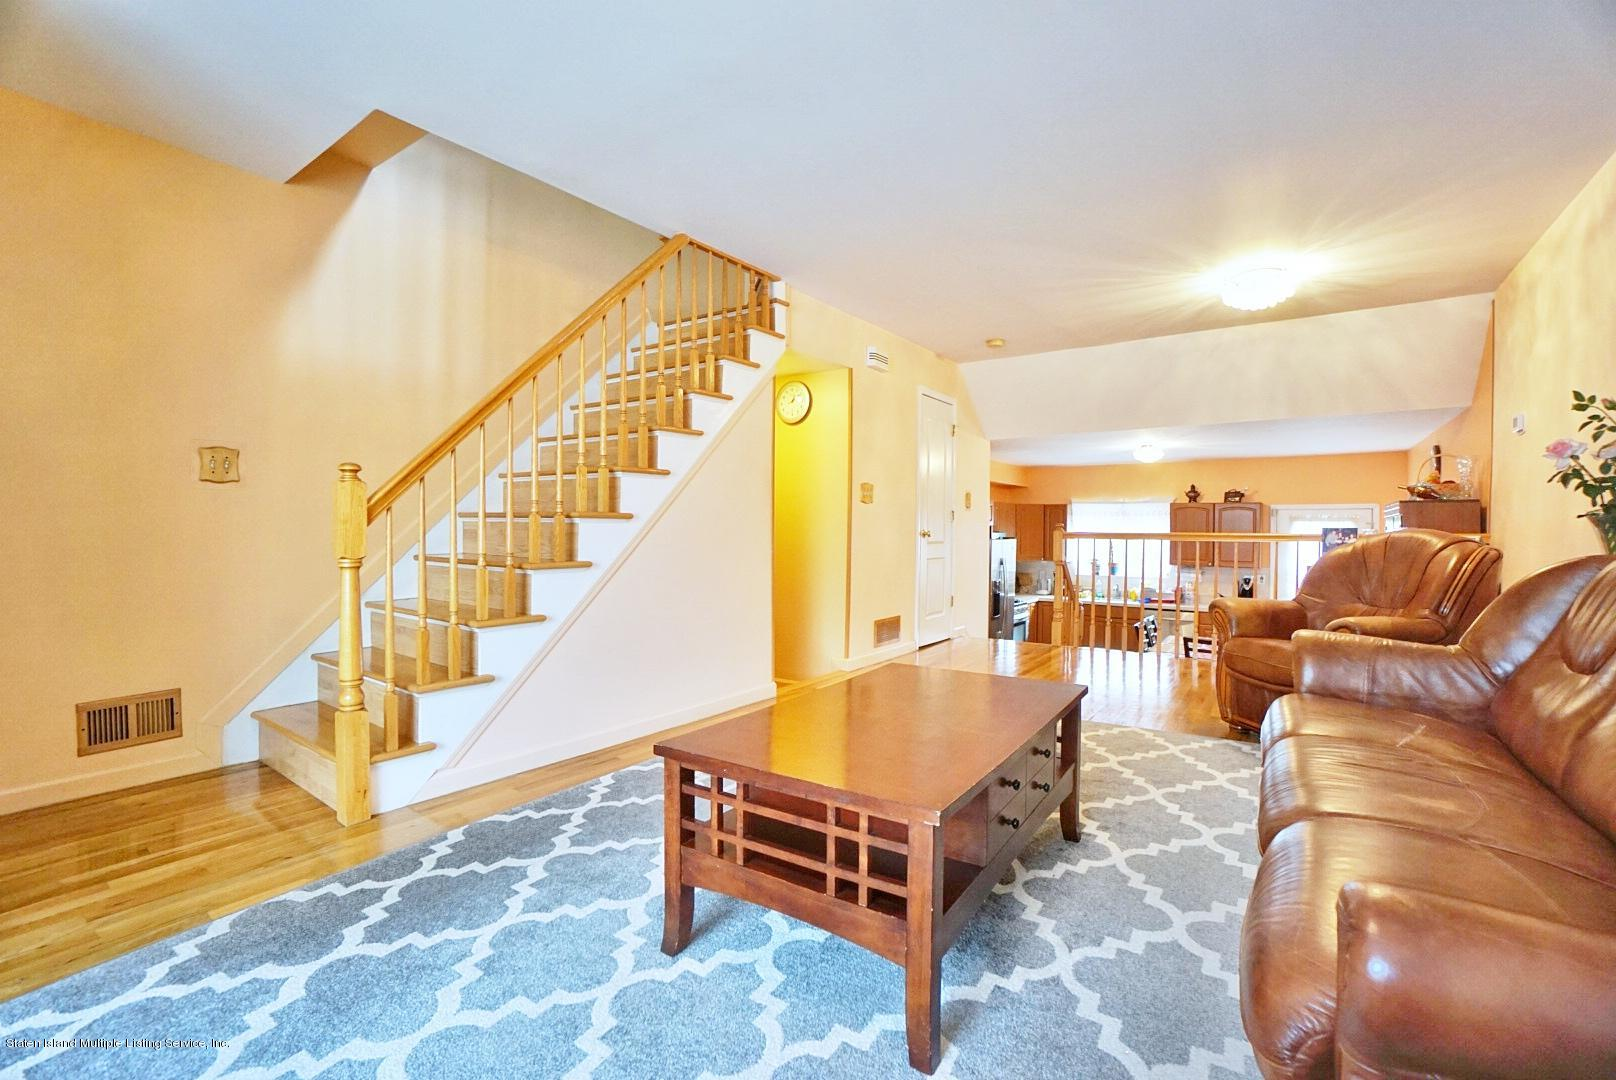 Single Family - Attached 30 Cranberry Court  Staten Island, NY 10309, MLS-1135421-7